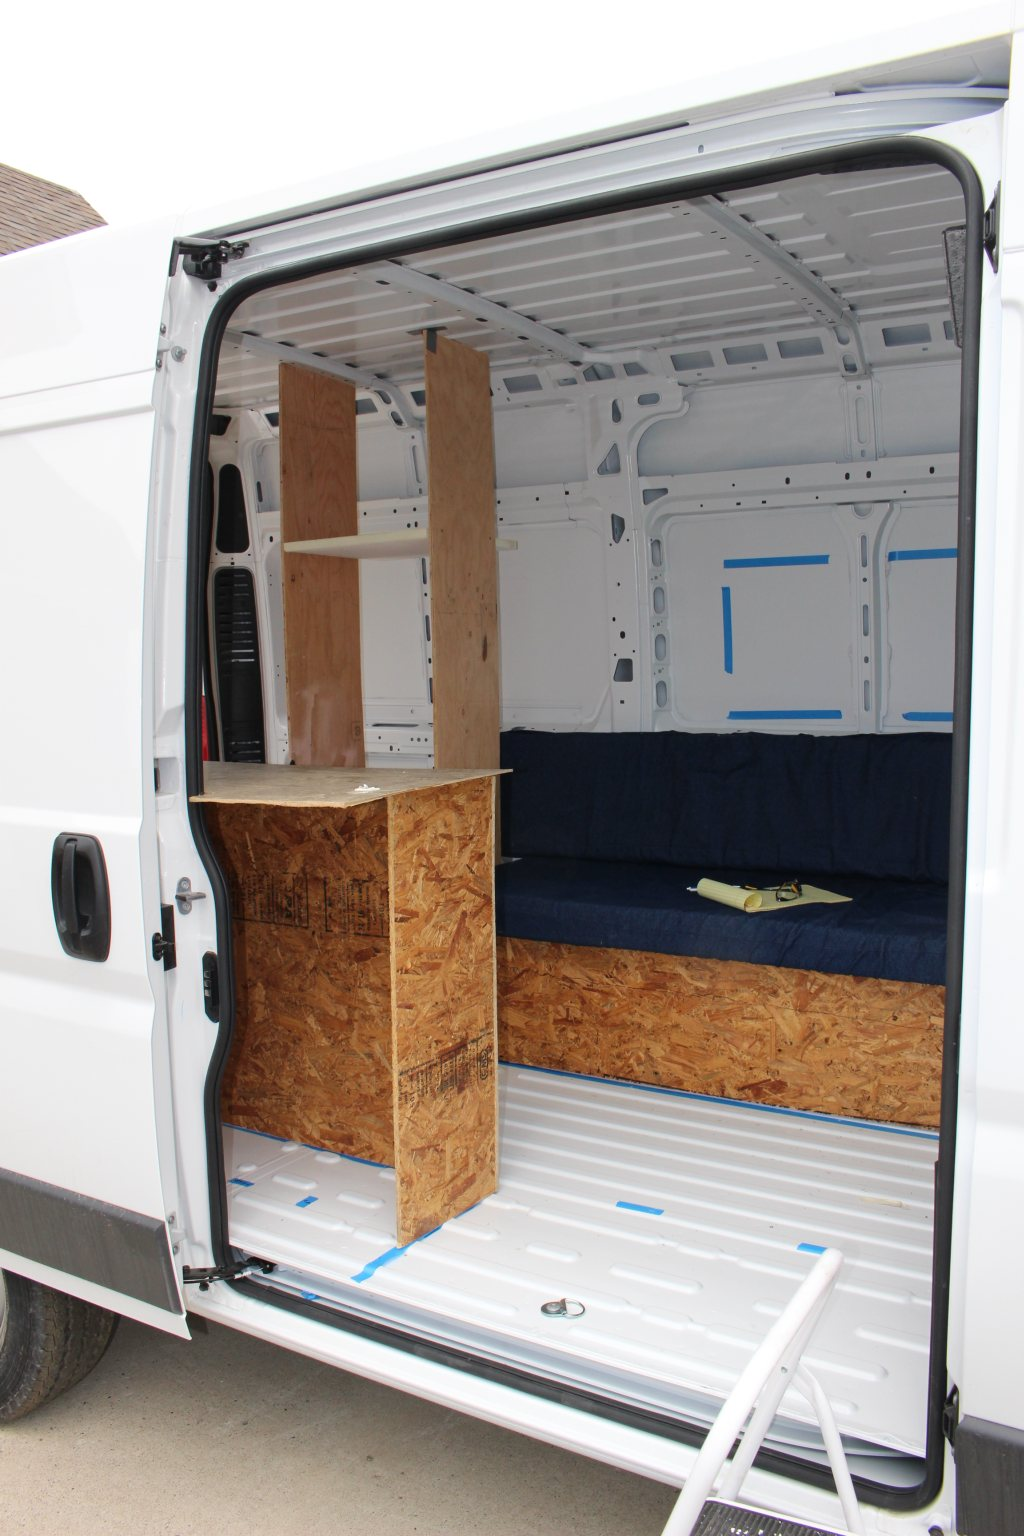 Dodge Promaster Camper Update Upcoming Cars 2020 Convertible Tops Wiring Diagram Of 1961 63 Ford Thunderbird Diy Van Conversion Layout